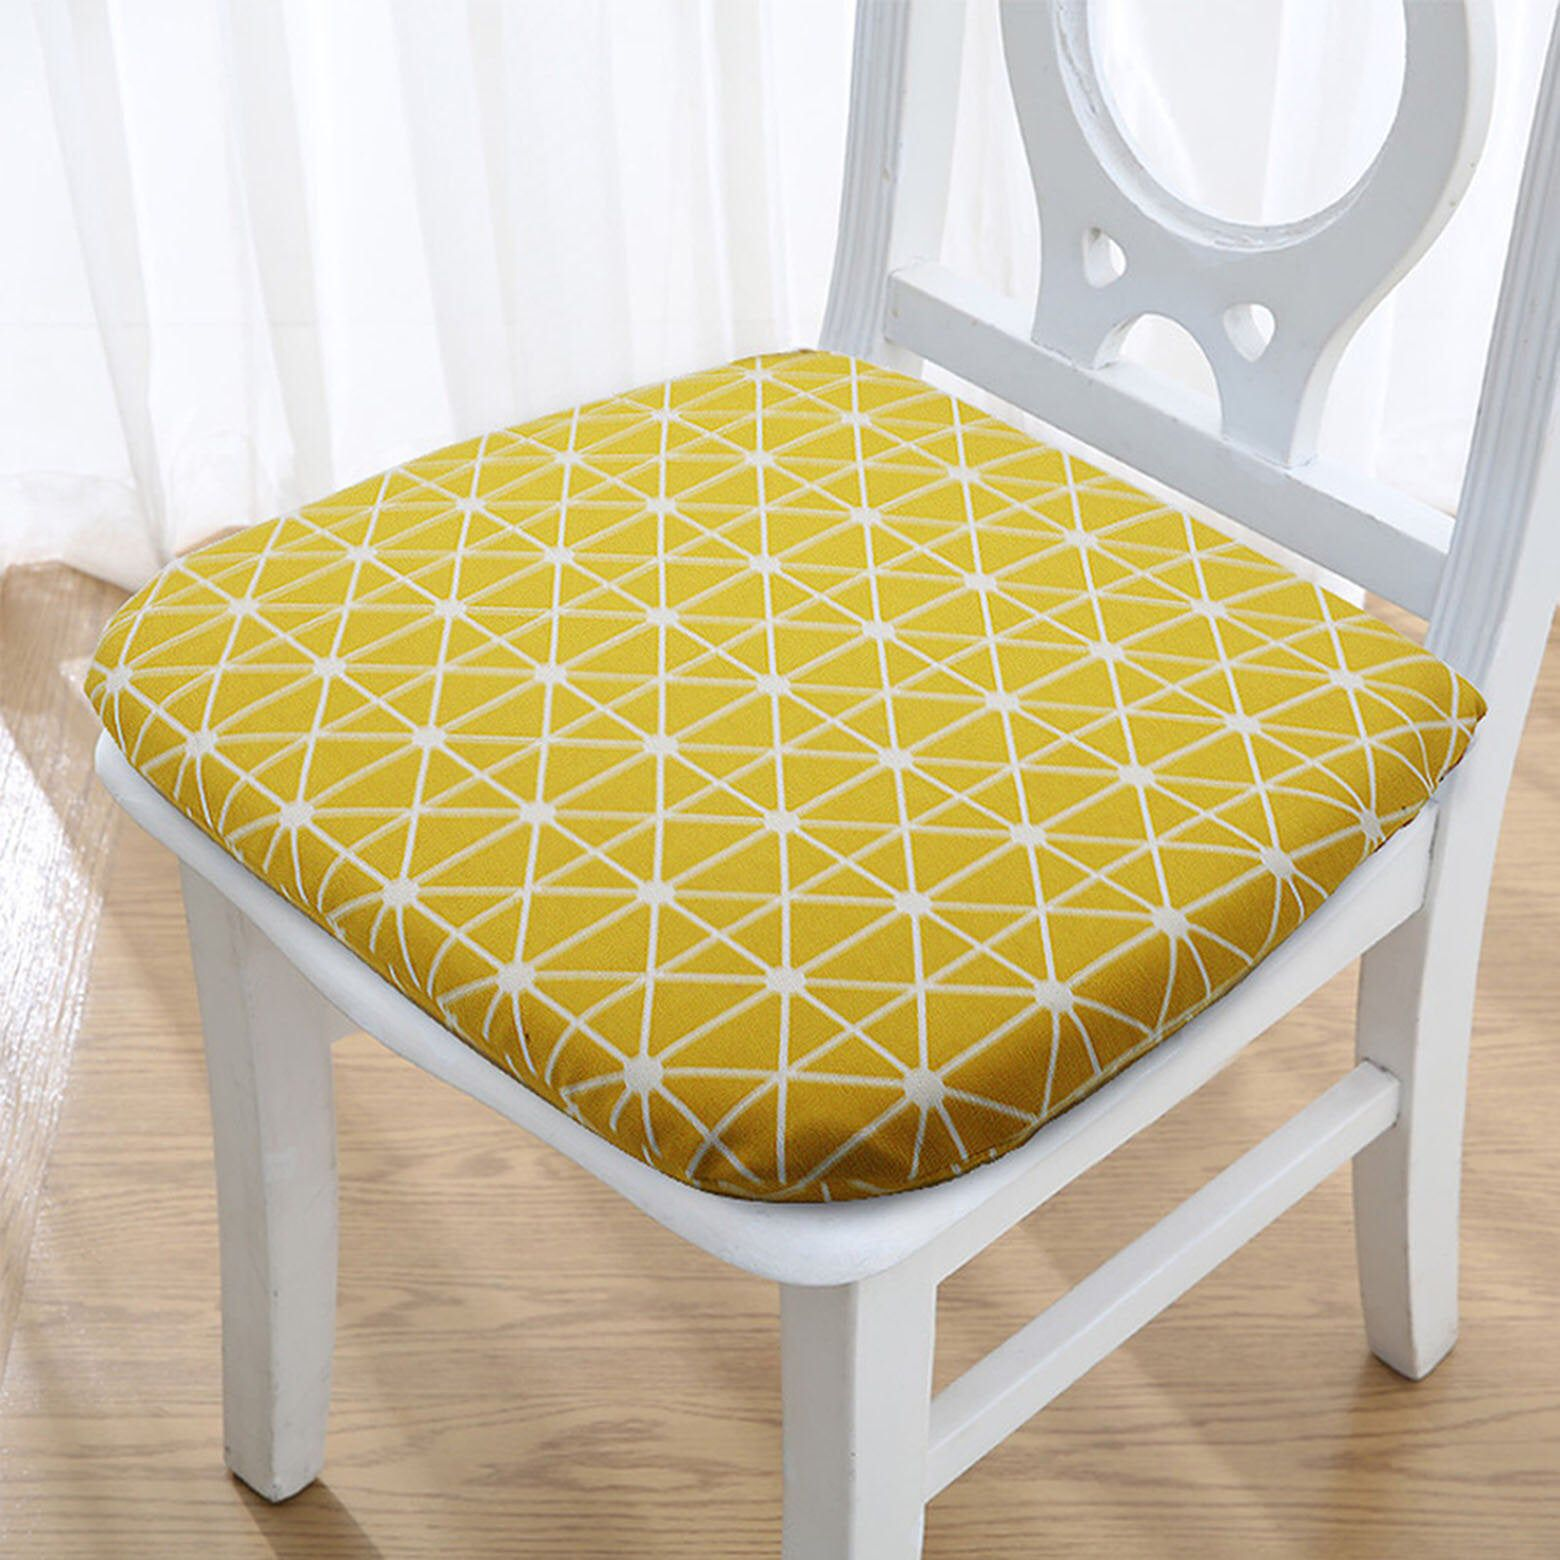 Memory Foam Dining Chair Cushion With Ties Indoor Kitchen Linen Chair Pad Washable Removable Replacement Breatha Chair Cushions Dining Chair Pads Chair Pads